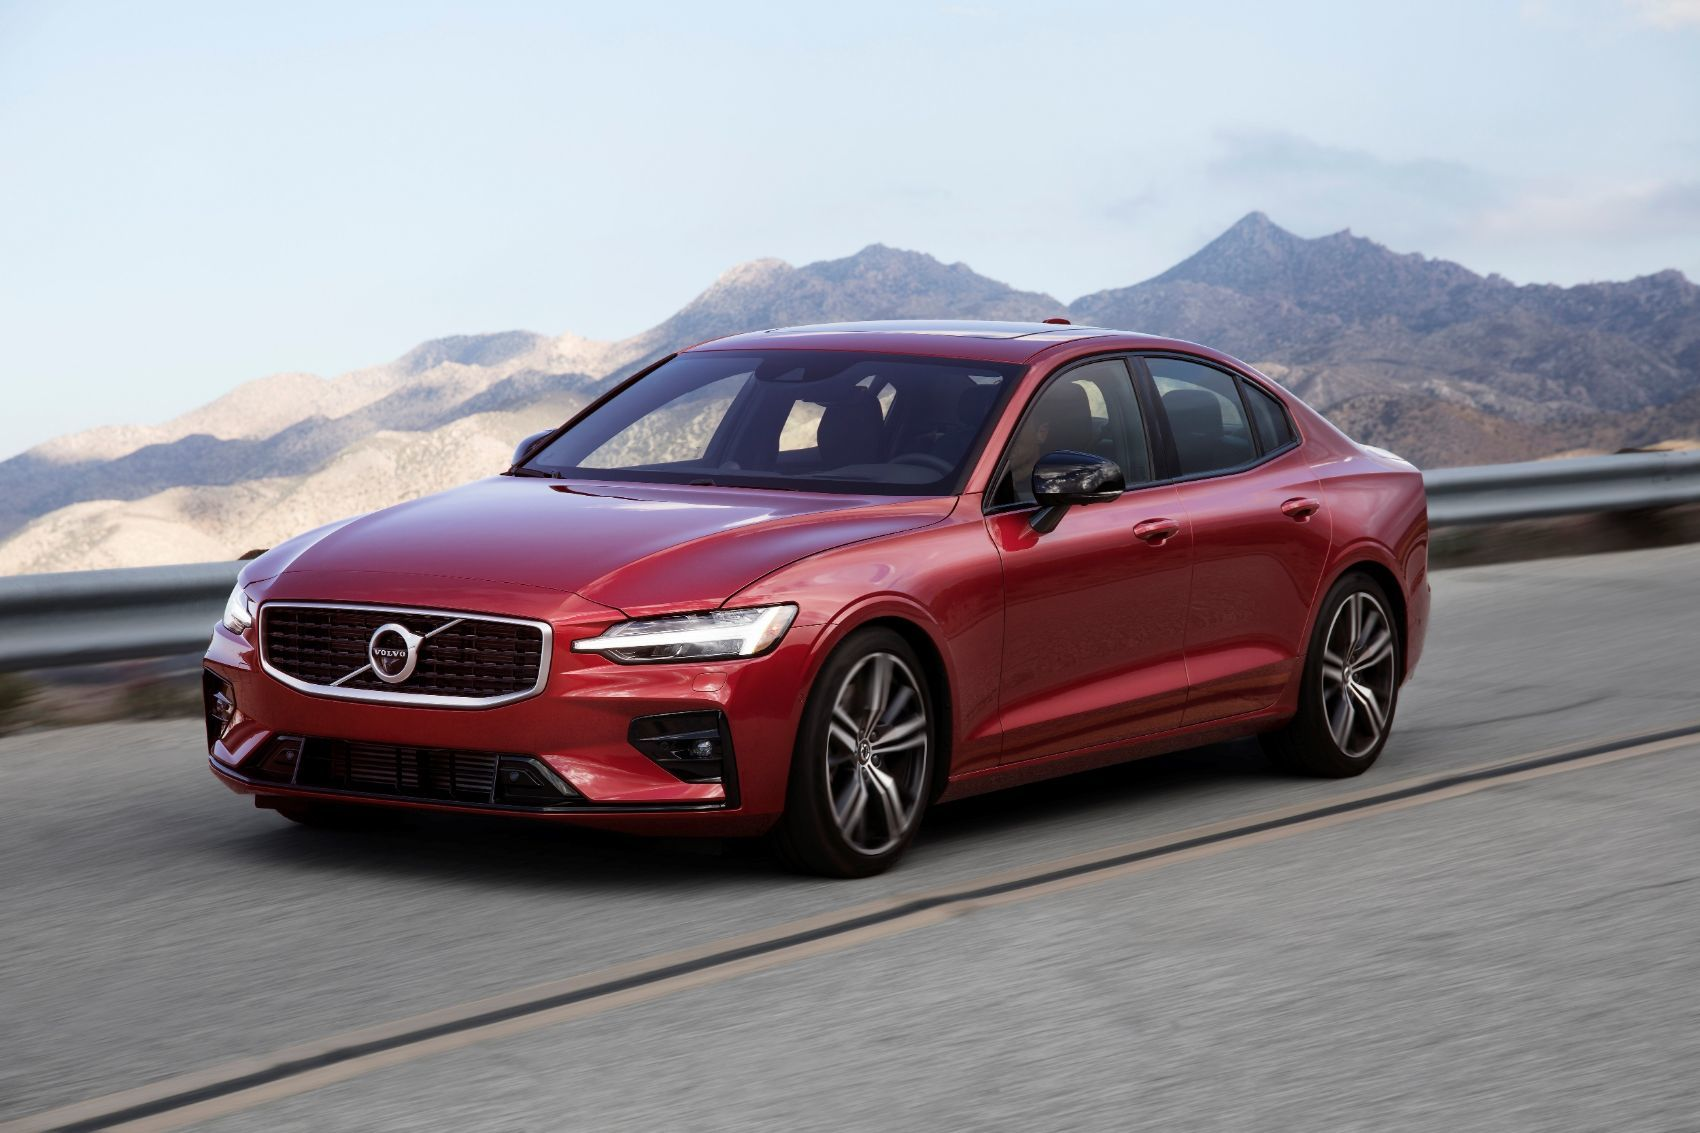 246280 Volvo S60 Named 2019 North American Car and Utility of the Year Finalist